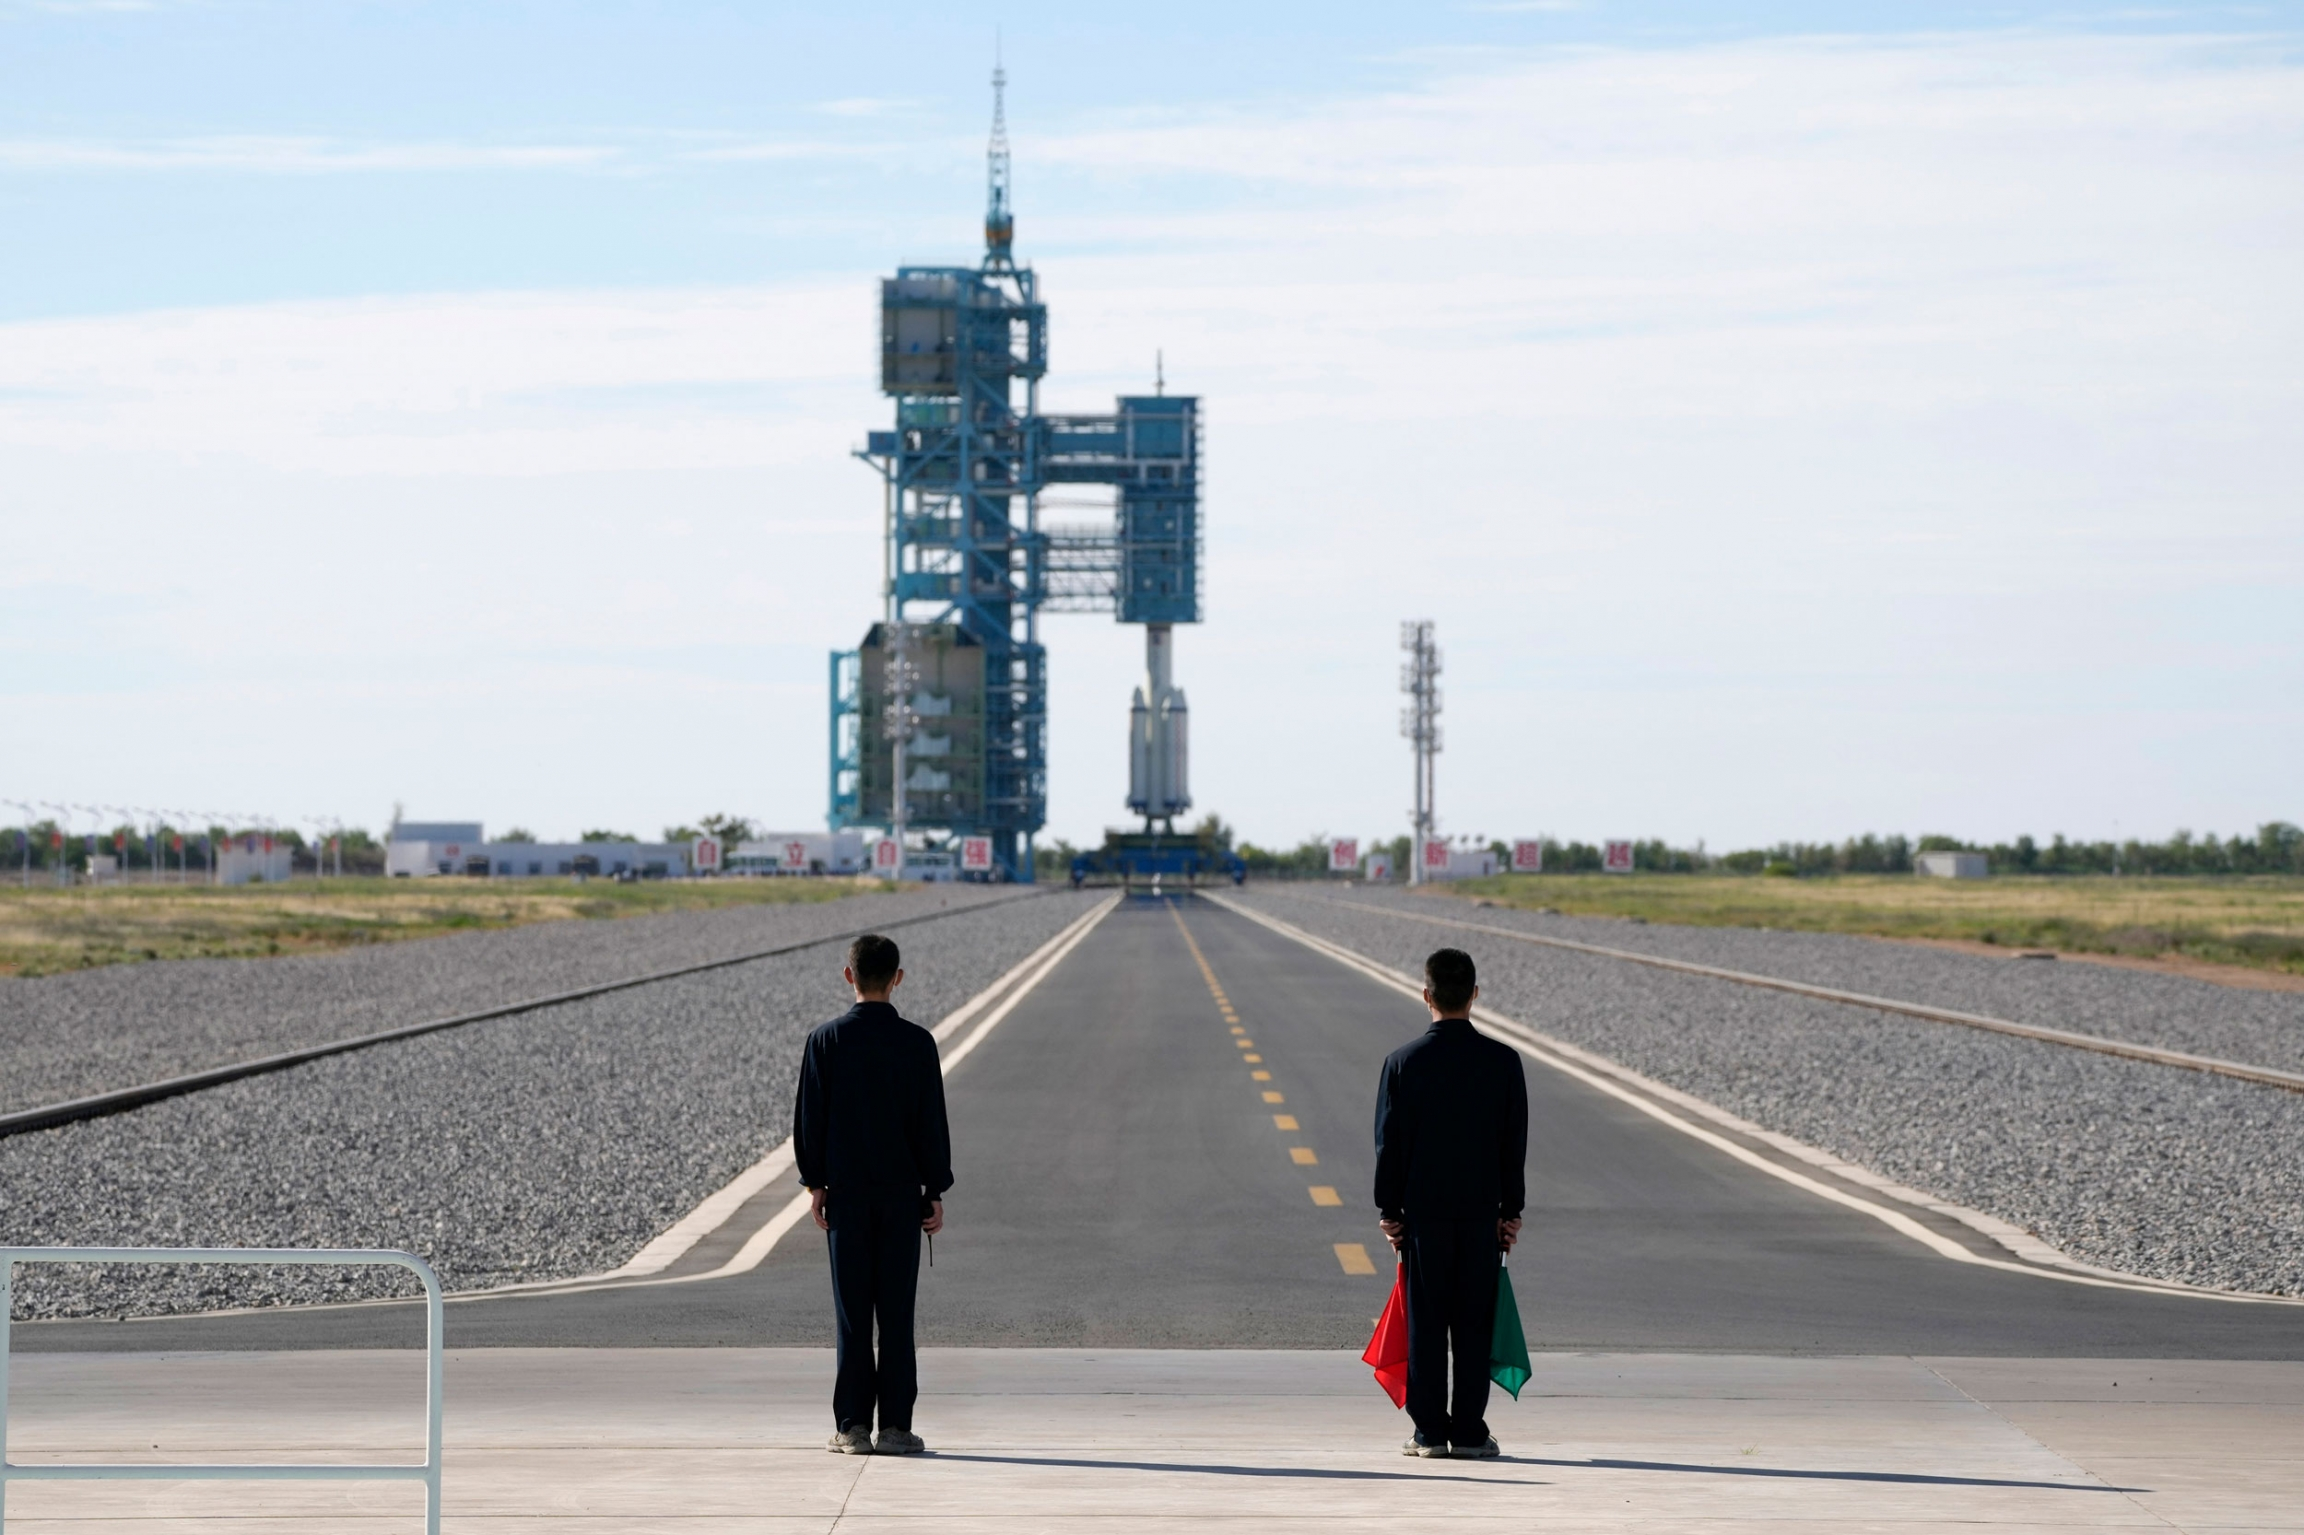 Two people are shown at the end of a long tarmac with the Chinese spaceship set for launch in the distance.